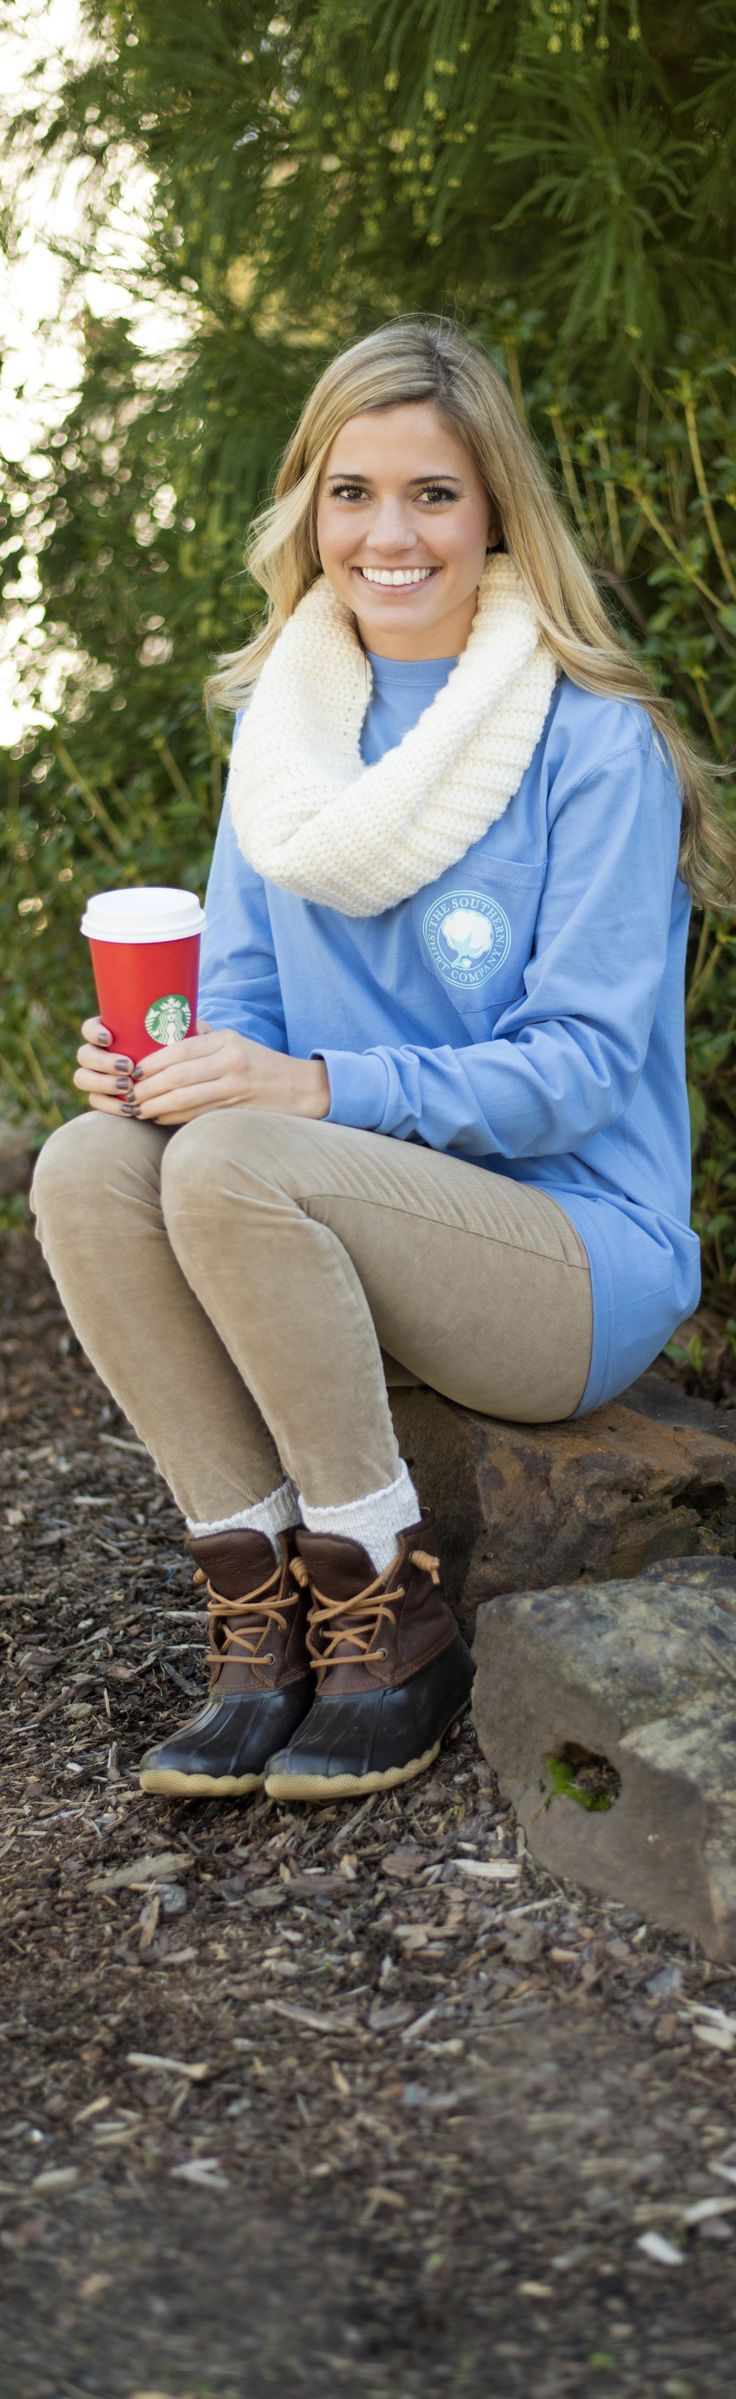 LL Bean Boots, a warm scarf, and a hot cup of coffee... Sounds like a great way to celebrate the holidays!